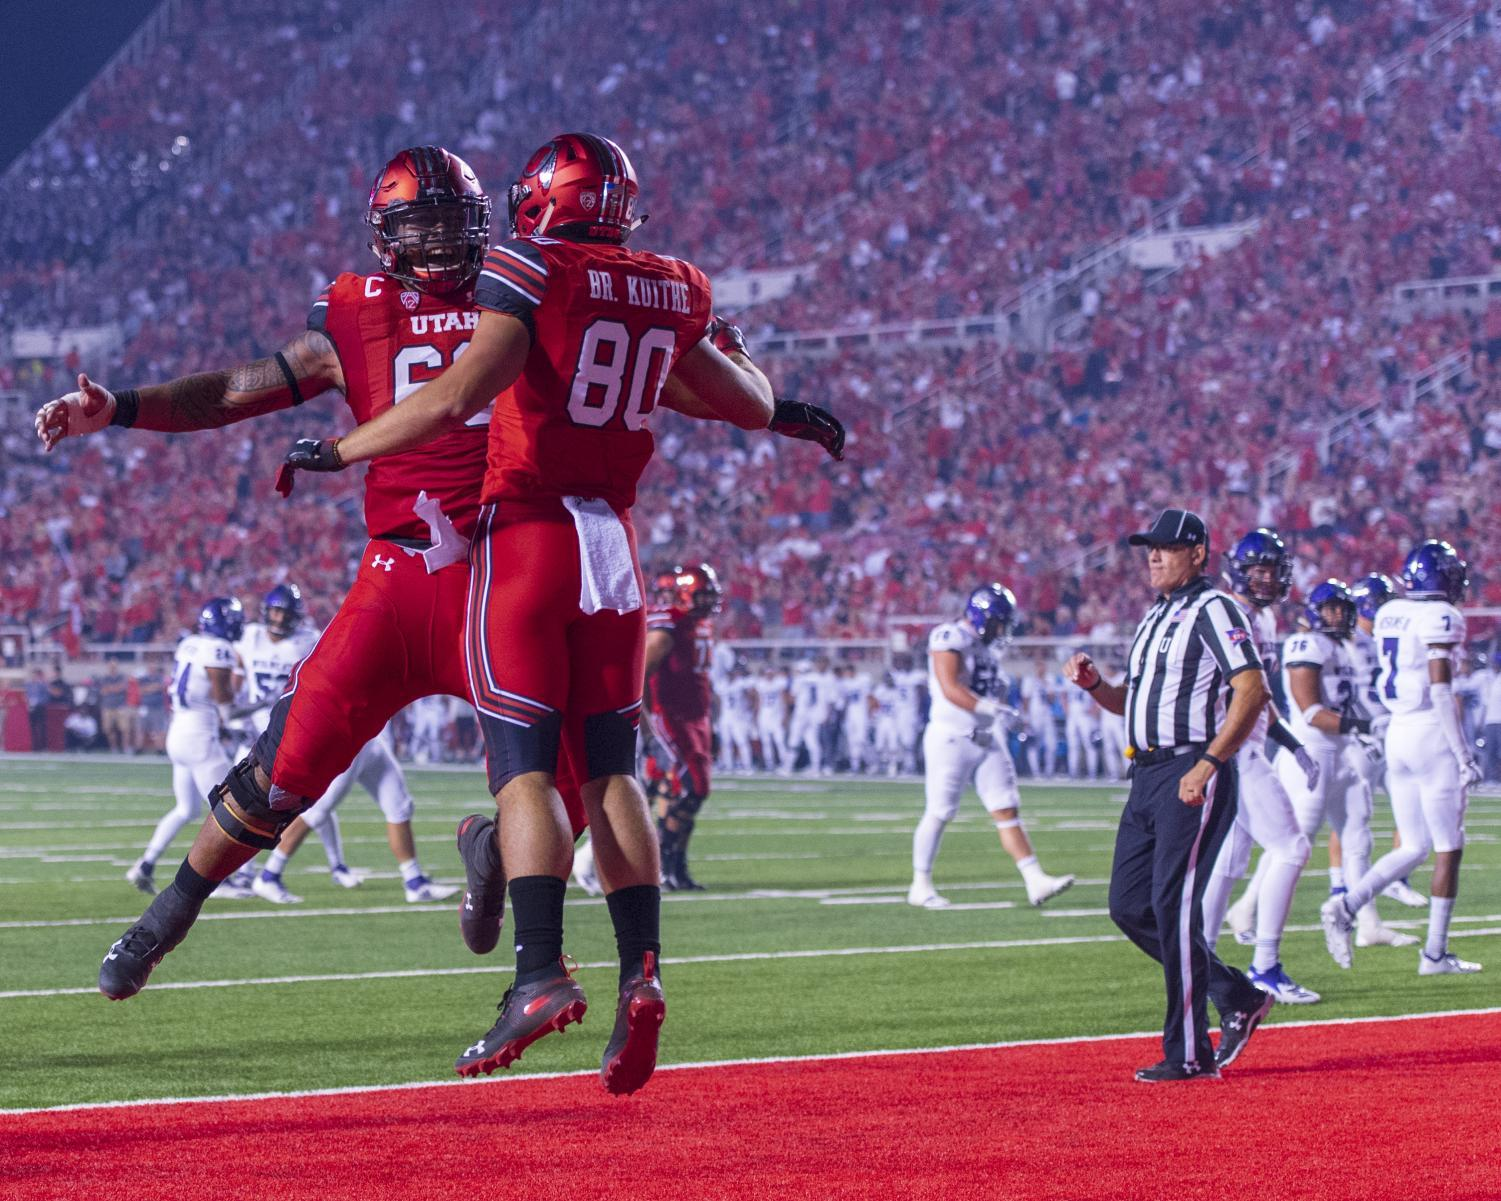 University of Utah freshman tight end Brant Kuithe (80) celebrates after scoring a touchdown during an NCAA Football game vs. the Weber State Wildcats at Rice Eccles Stadium in Salt Lake City, Utah on Thursday, Aug. 30, 2018. (Photo by Kiffer Creveling | The Daily Utah Chronicle)